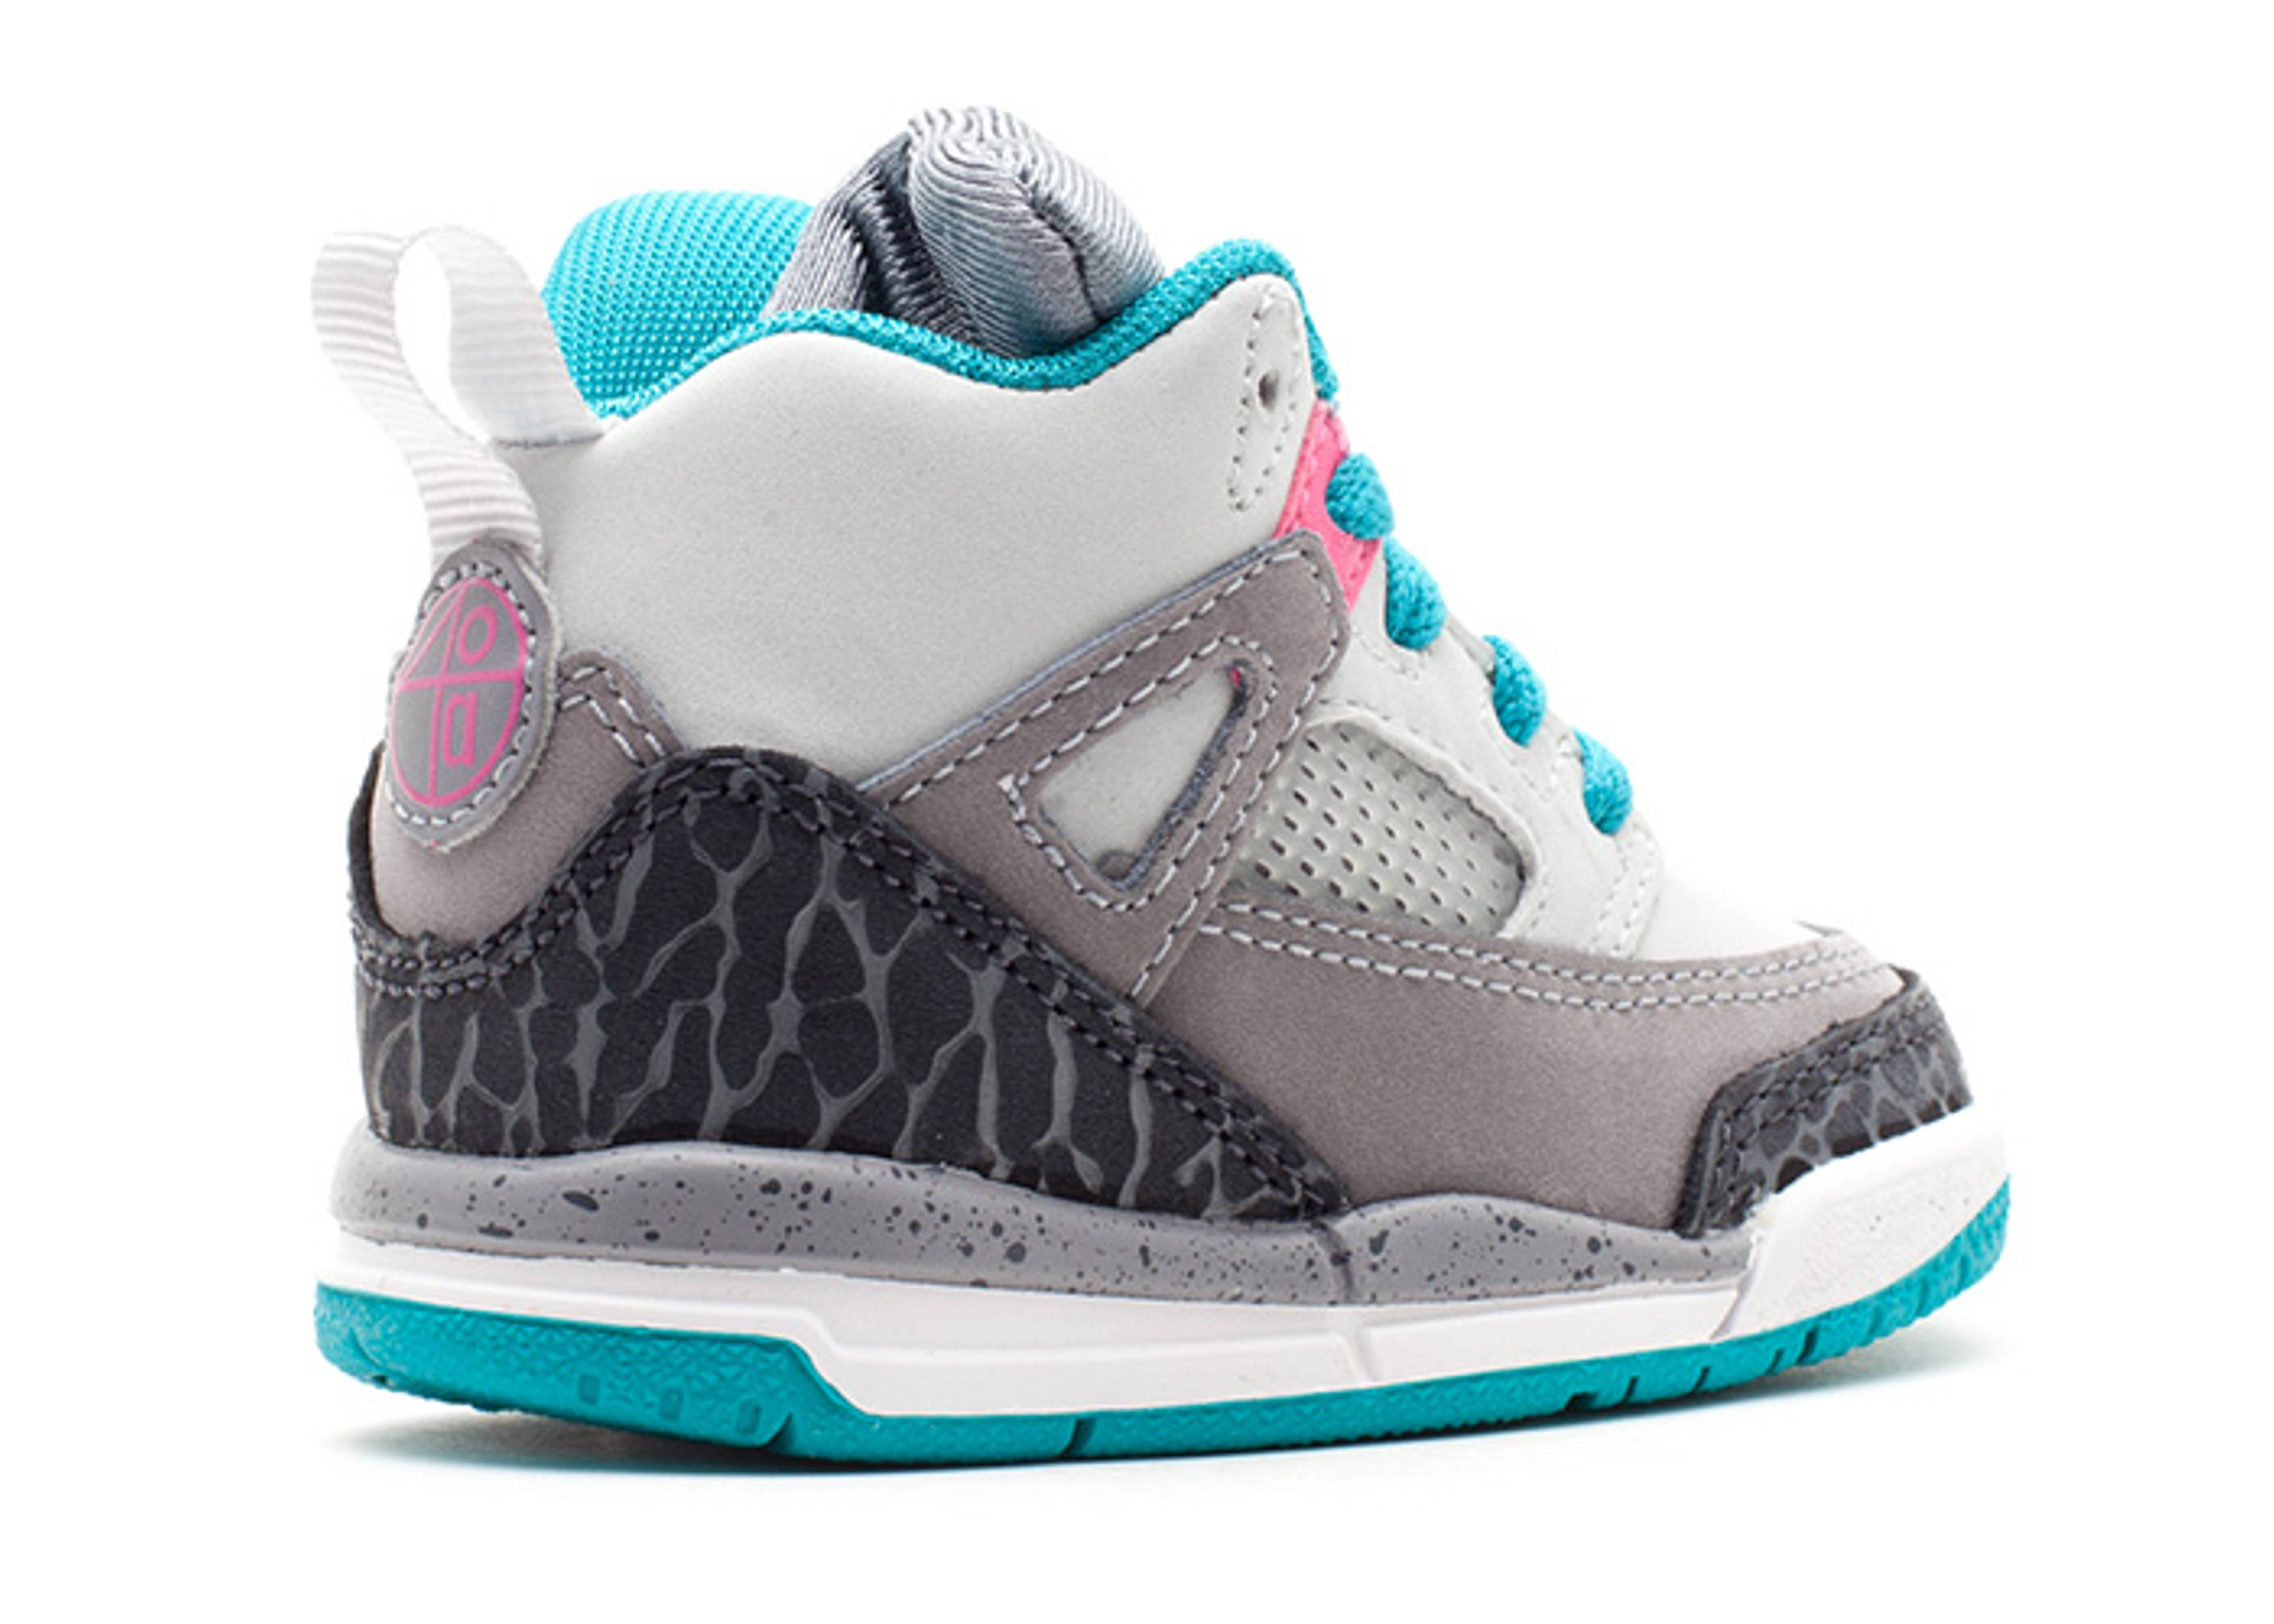 huge discount 9a44c f3b7e coupon code for herr air jordan 5 retro black grape skor billigt svart ny  smaragd druvis f3c79 eed2a  best price air jordan spizike miami vice b6be4  5874f